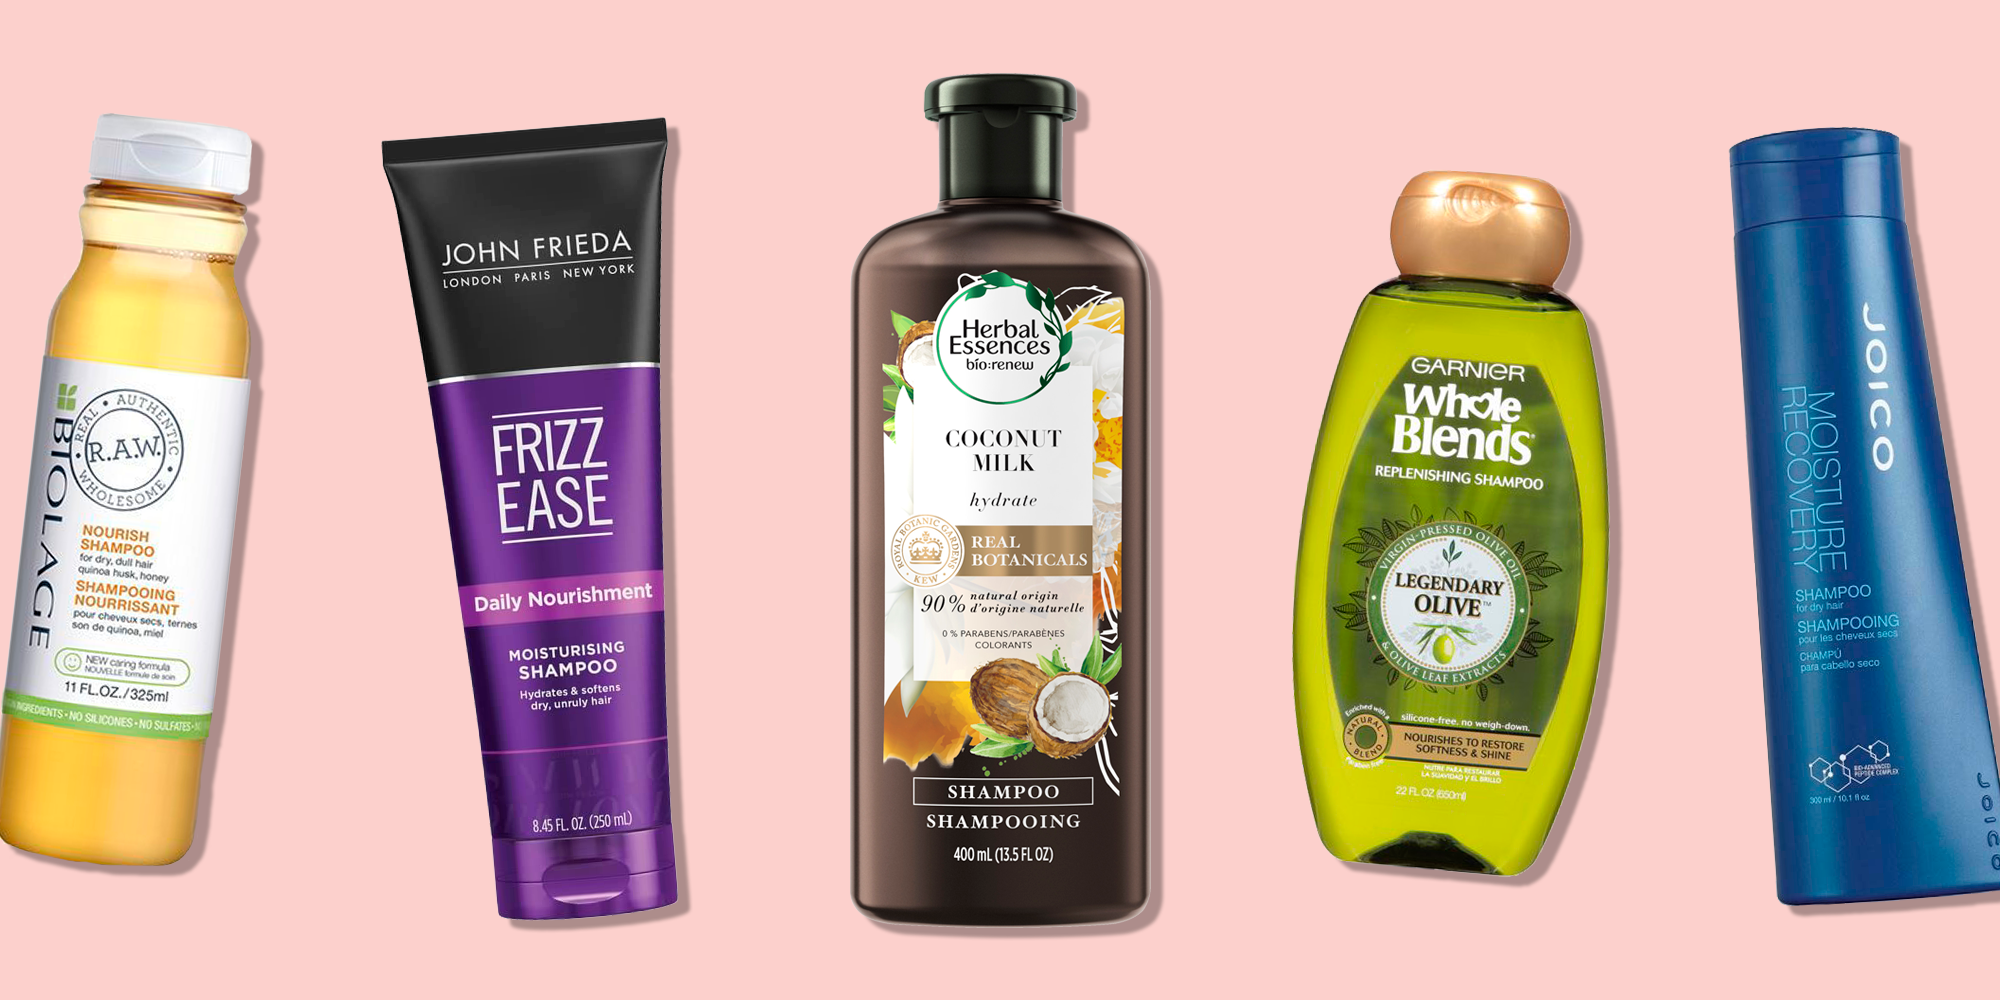 15 Greatest Shampoos for Each Hair Type and Texture, According to Hair Pros